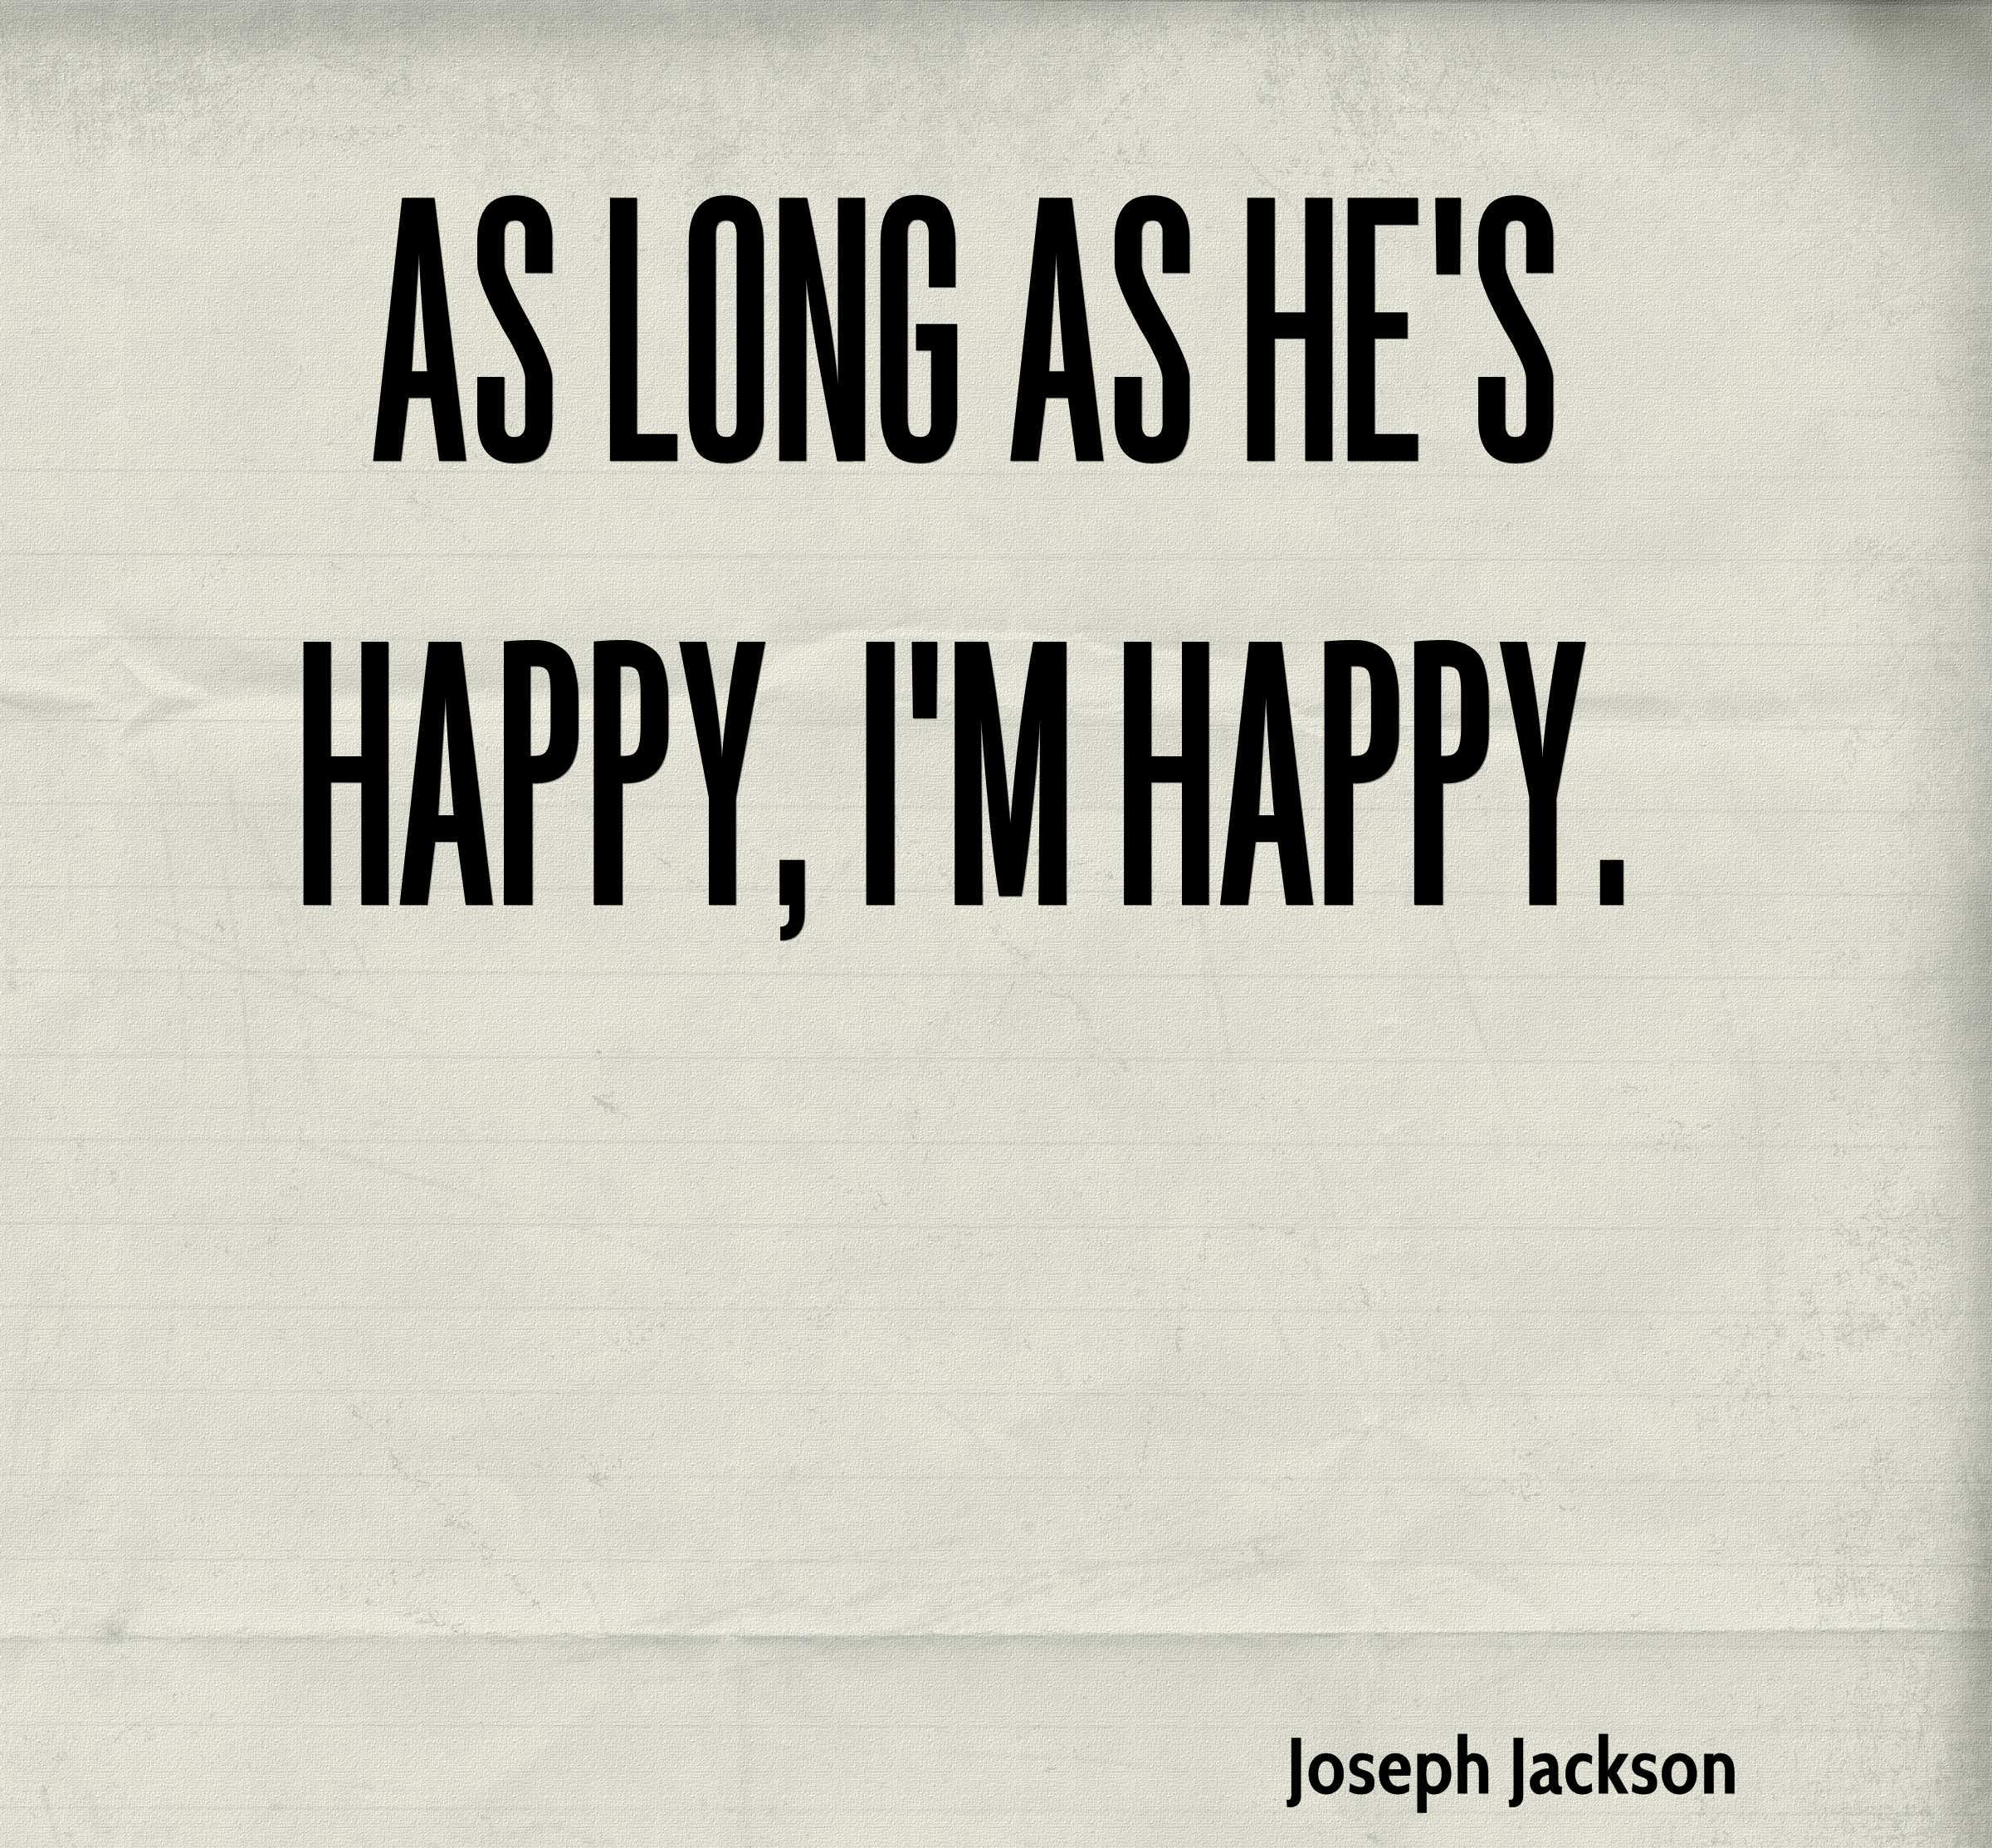 Being With Him Quotes: Collection Of Best I'm Happy Quotes